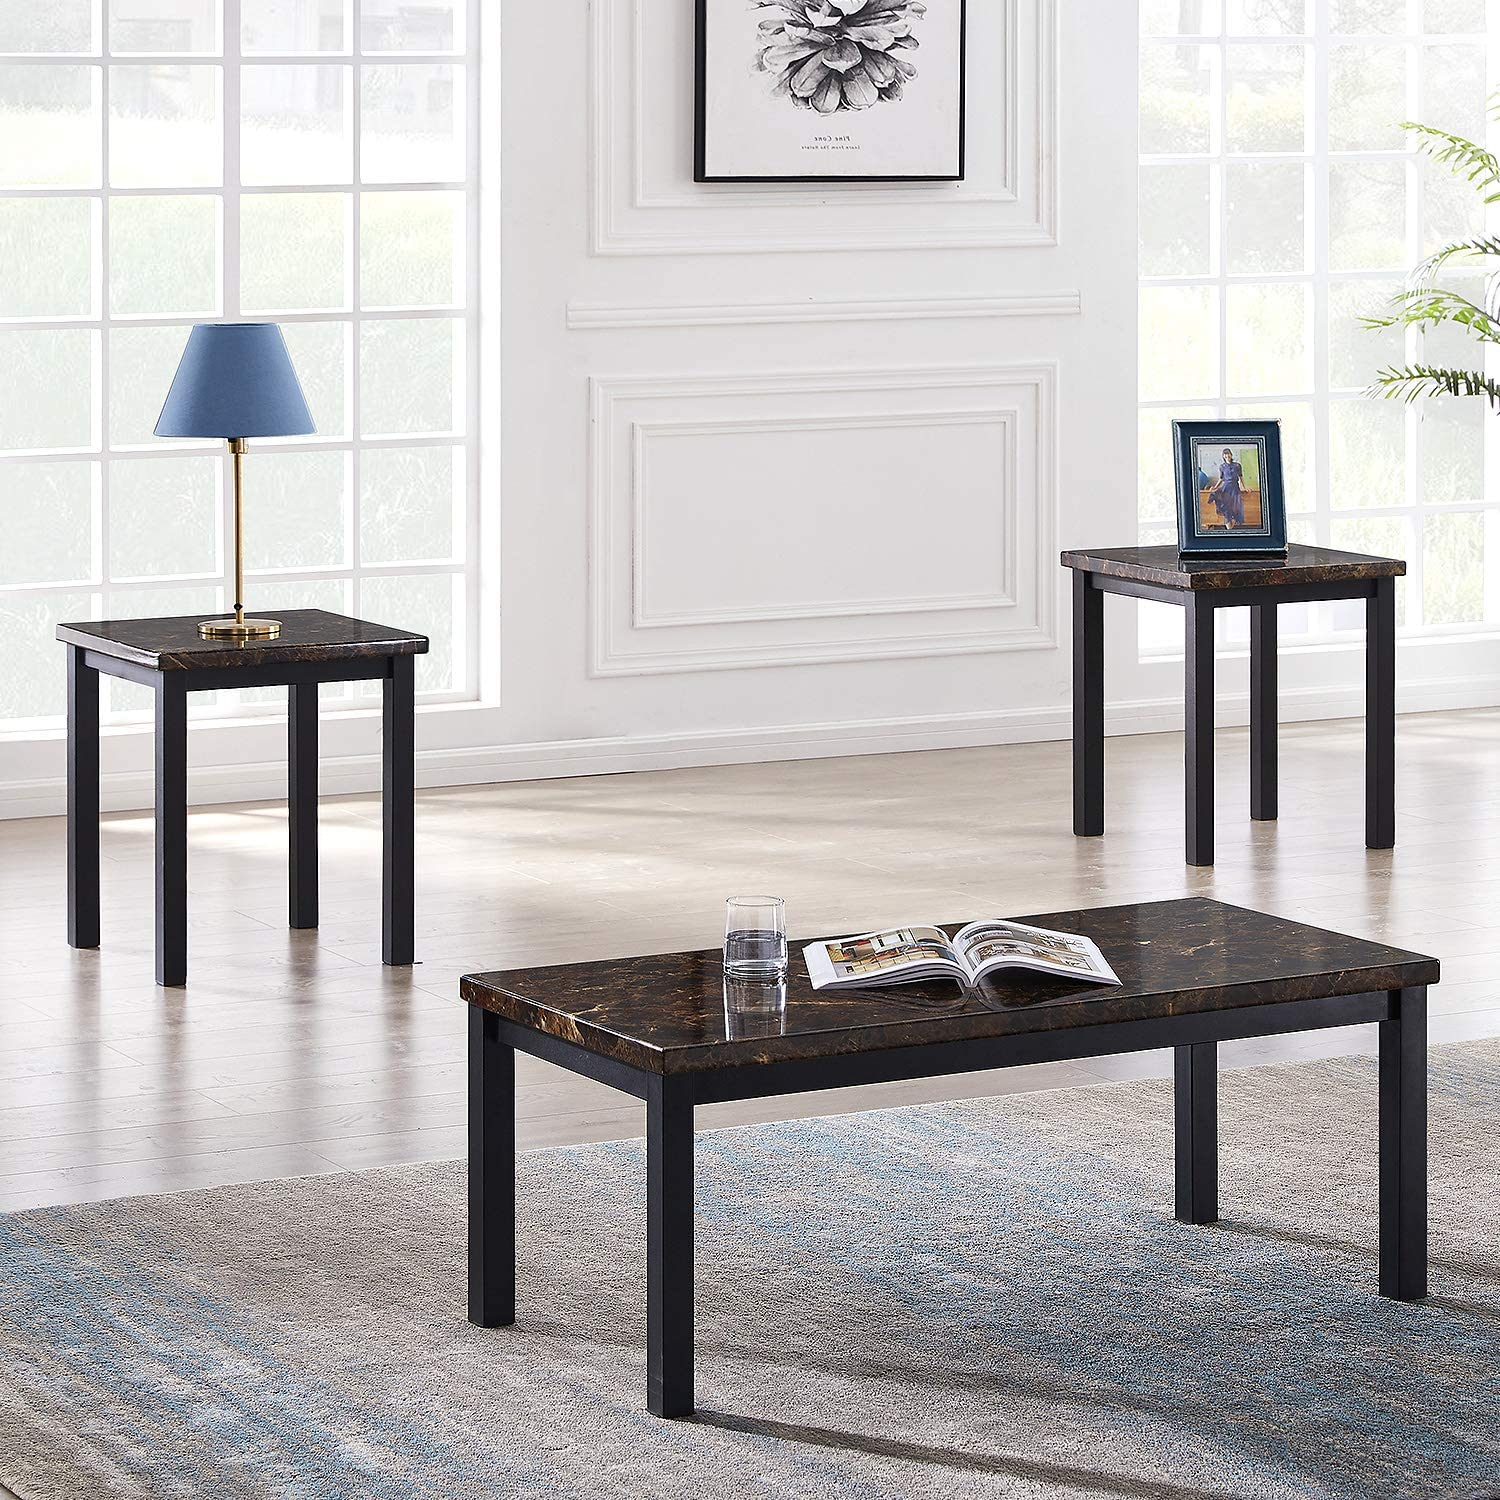 Amazon Com Recaceik 3 Pieces Faux Marble Tabletop Traditional Coffee Set With Black Metal Frame Sofa Side Tables Perfect For Living Room Accent Furniture Brown Furniture Decor